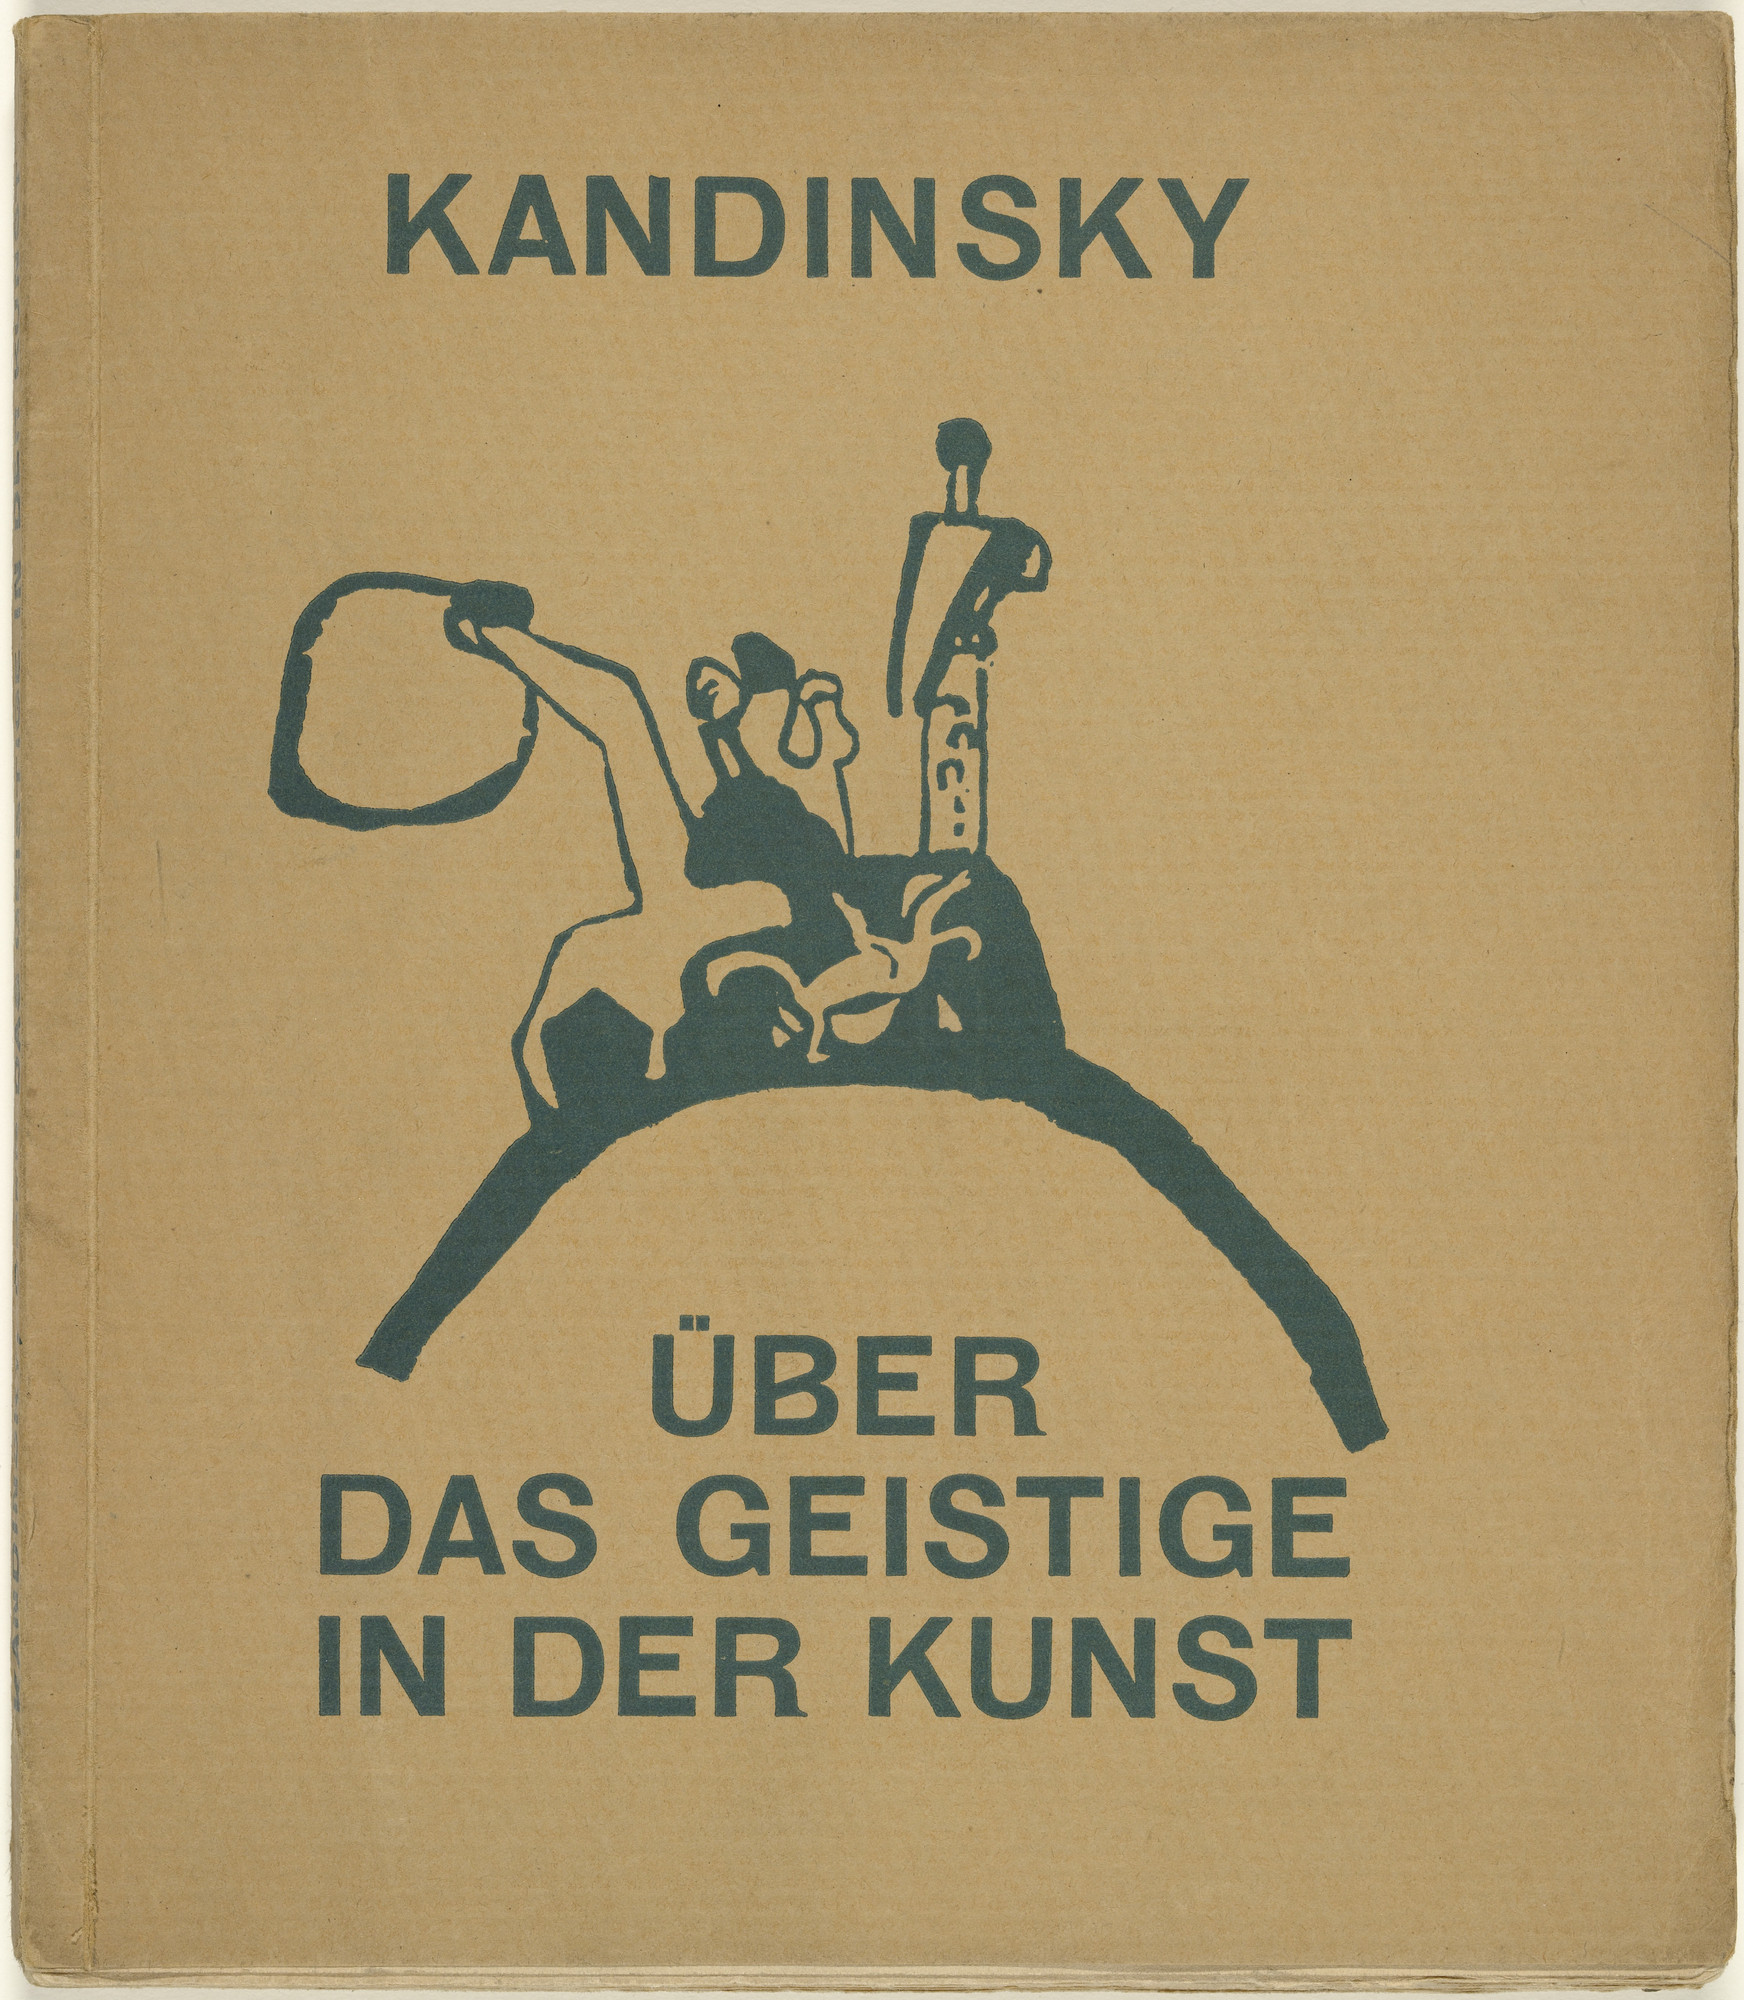 Vasily Kandinsky. Standing and Falling Tower with Rider (Stehender und Stürzender Turm mit Reiter) (cover) from Über das Geistige in der Kunst (Concerning the Spiritual Art). 1911